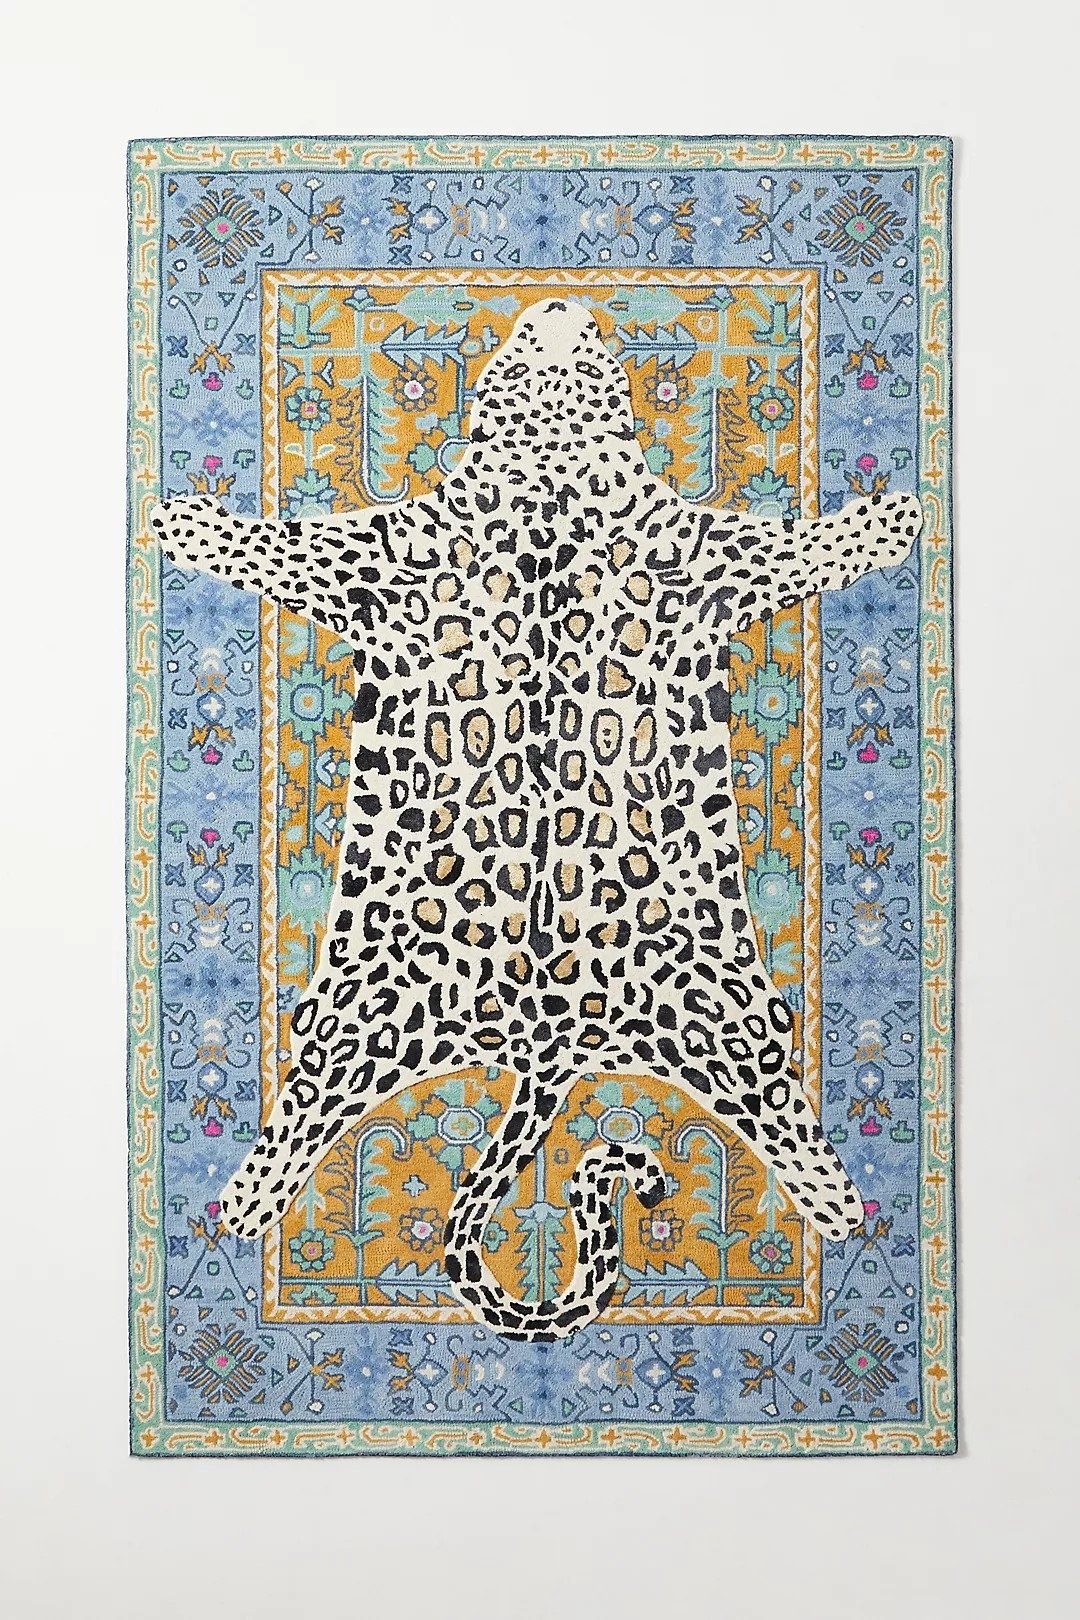 multi colored area rug with leopard hide print over traditional Turkish pattern